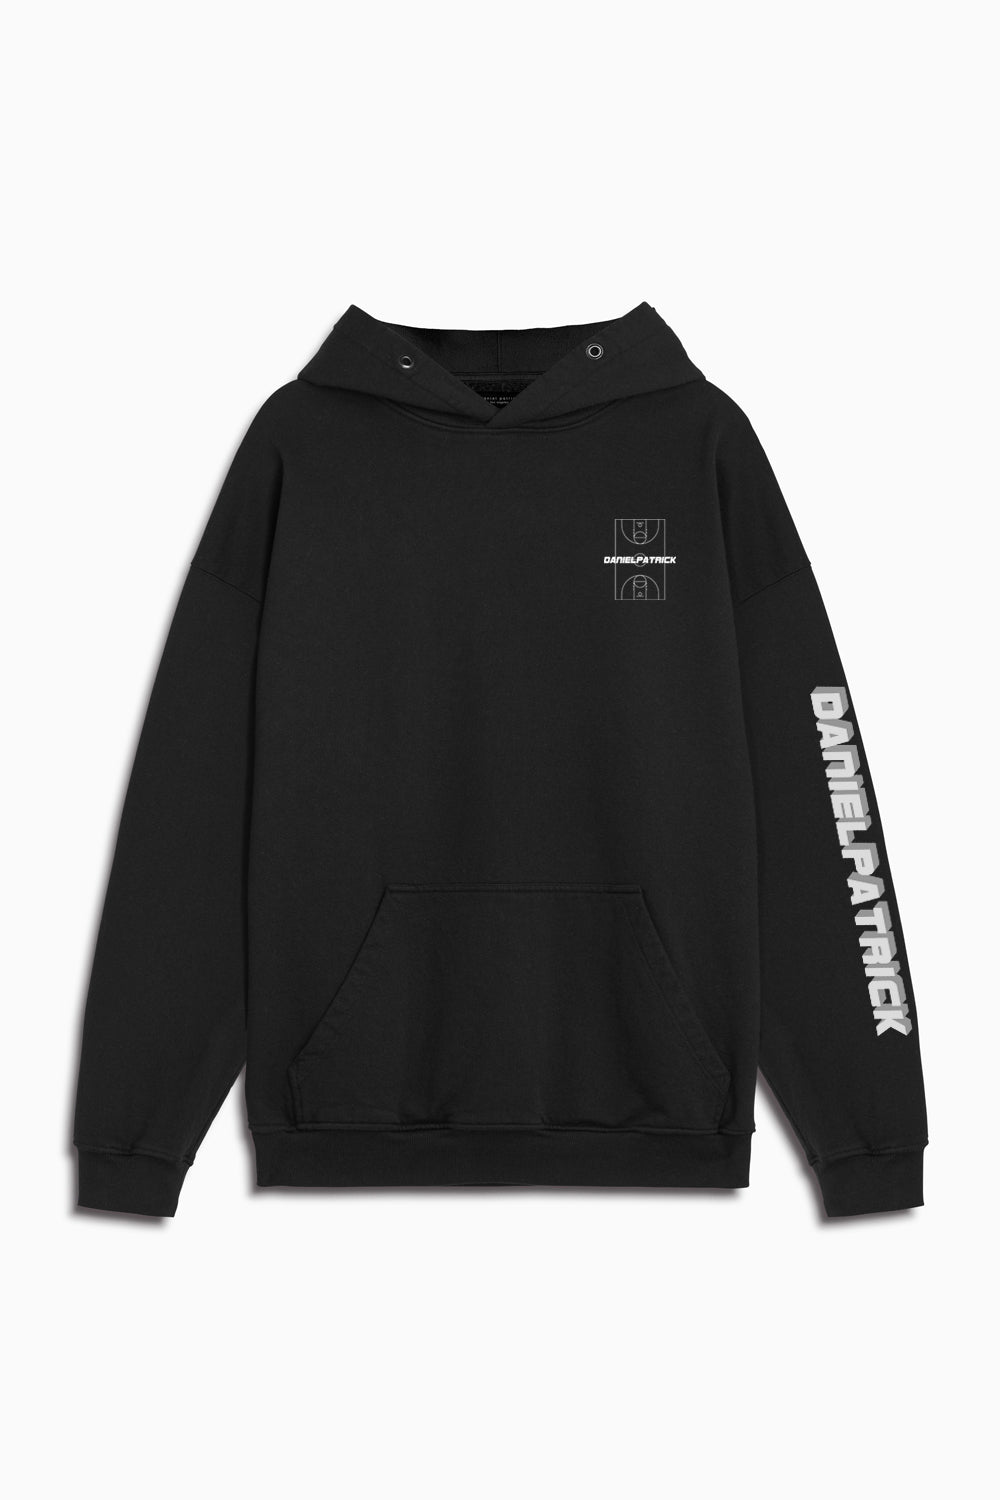 DP court hoodie in black by daniel patrick